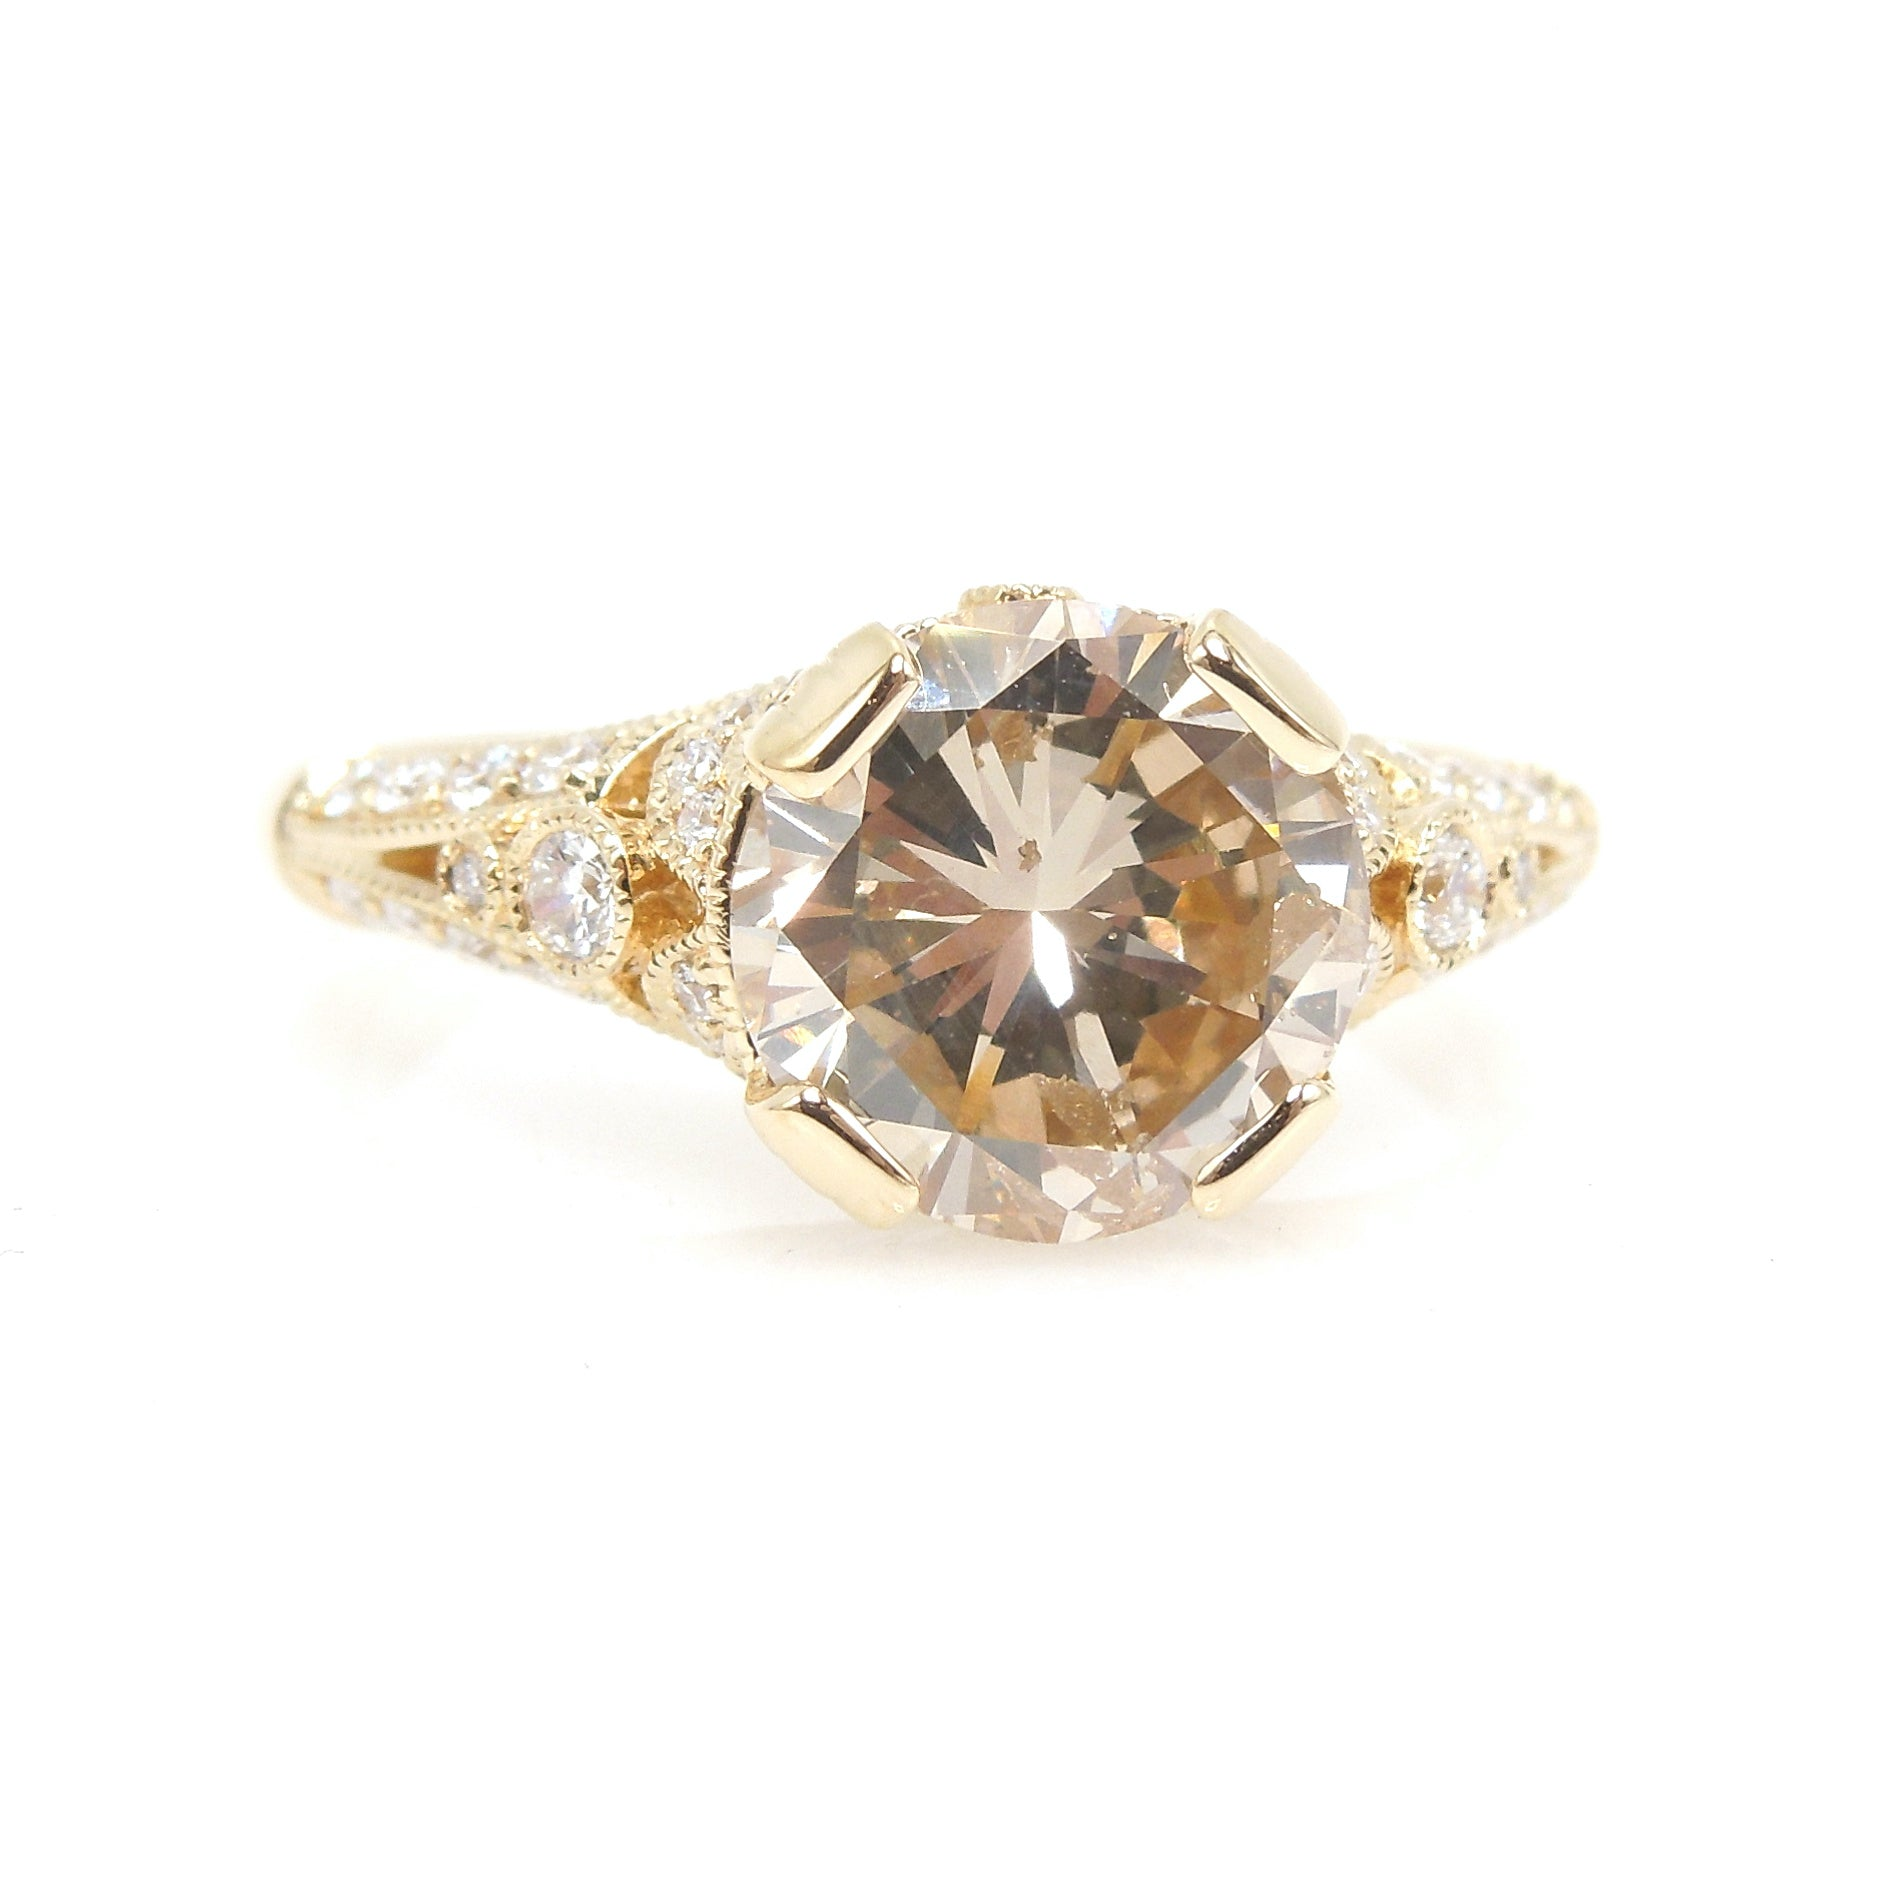 Fascinating 2.21ct Round Diamond in 18K Yellow Gold Art Deco Style Pavé Mounting